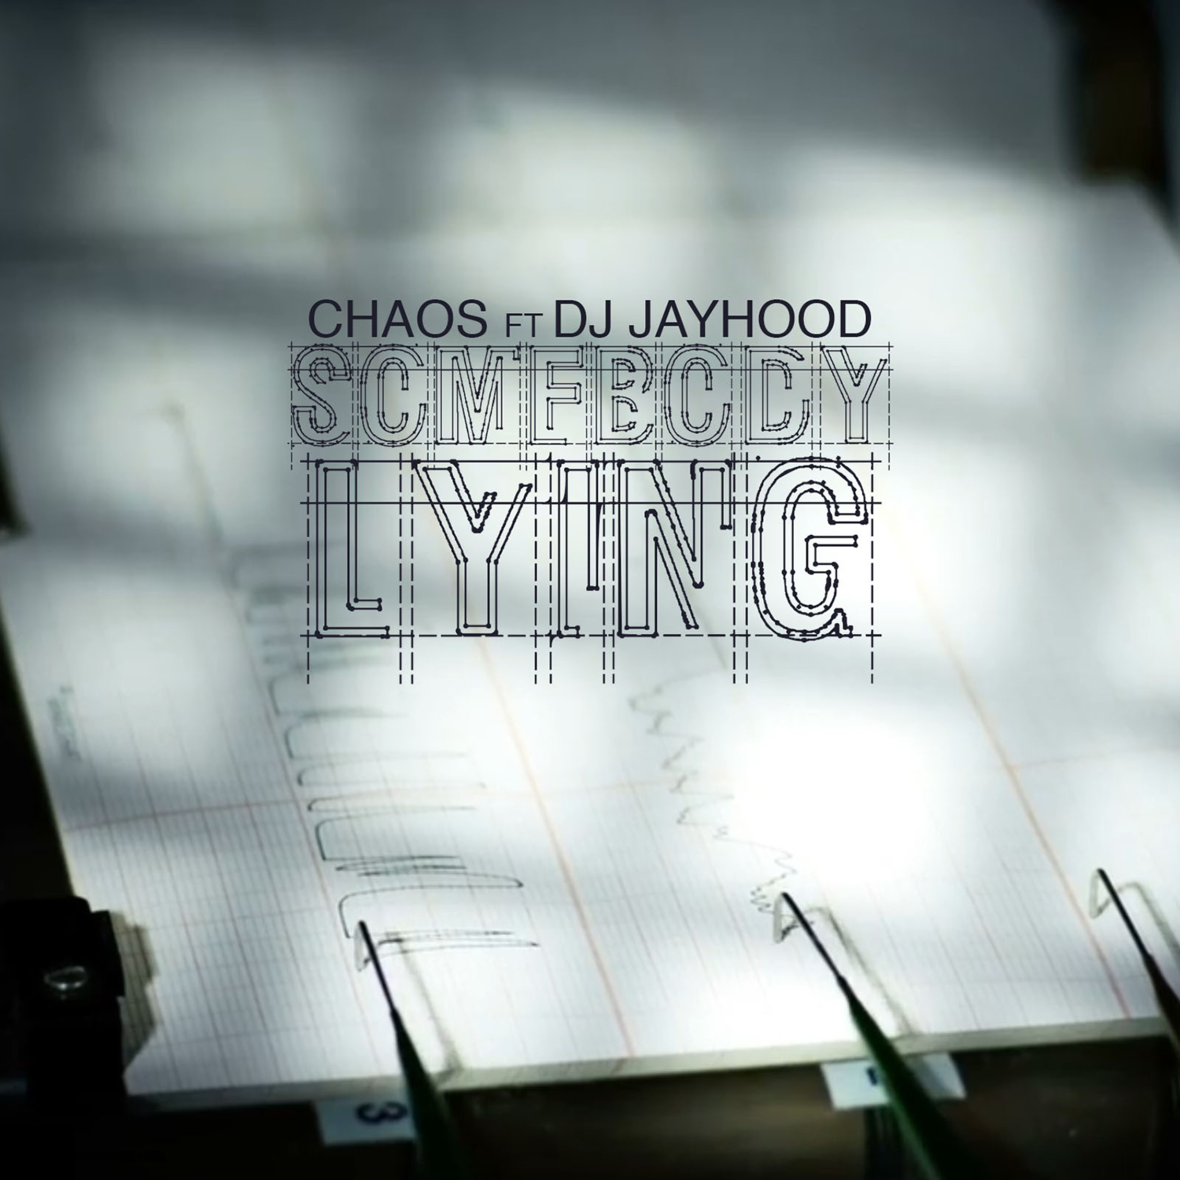 Chaos ft Dj Jayhood - Somebody s Lying official artwork